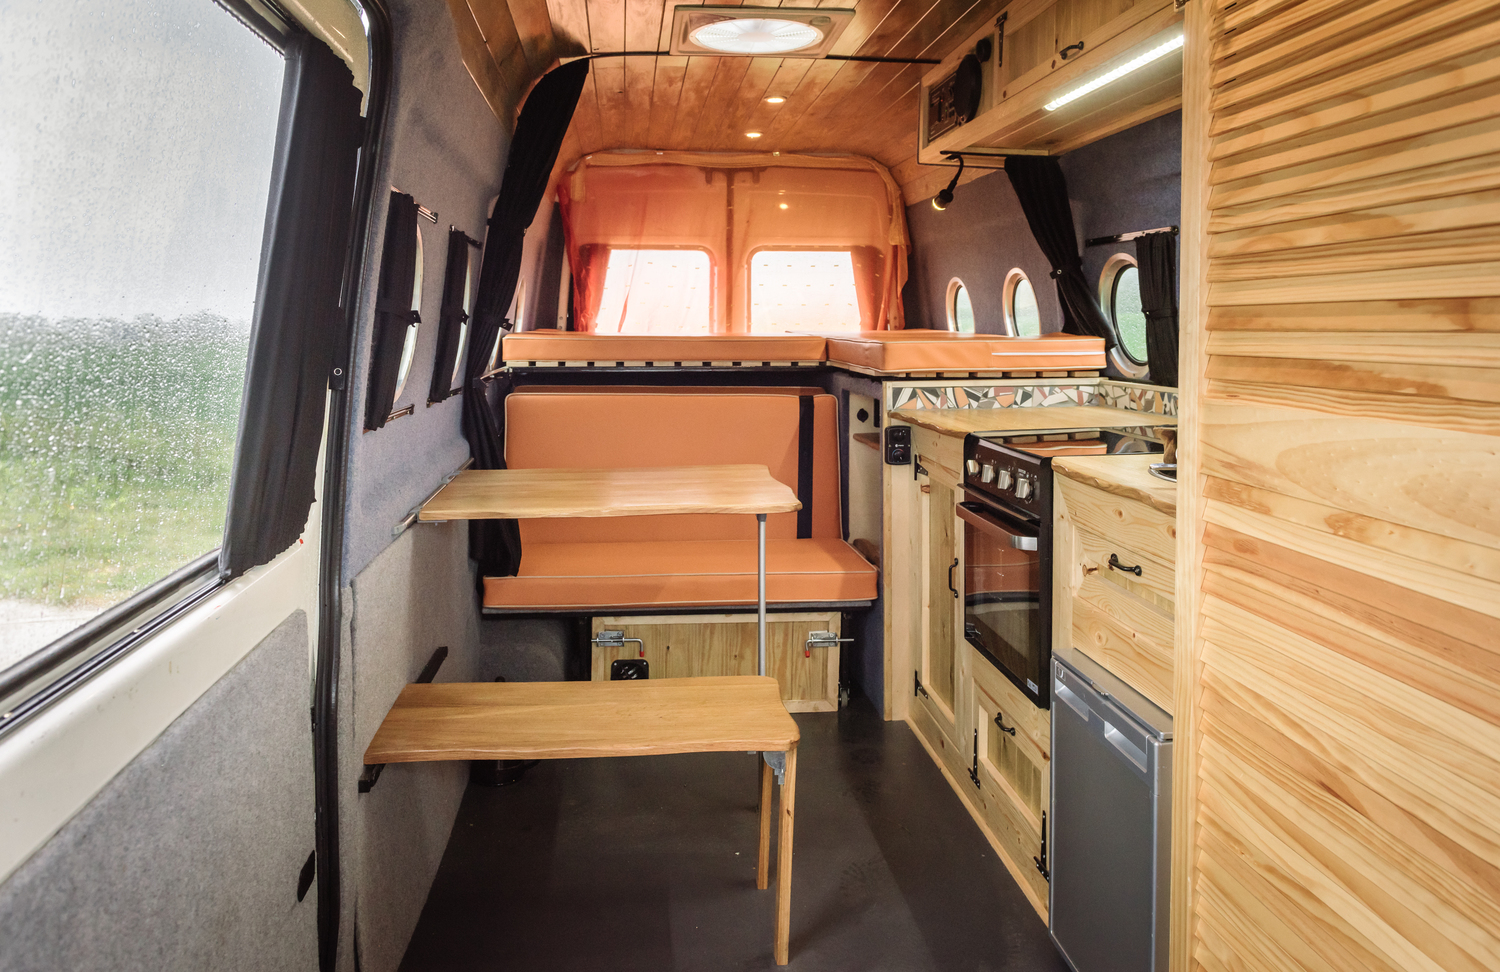 Love Campers Sprinter Conversion - Interior